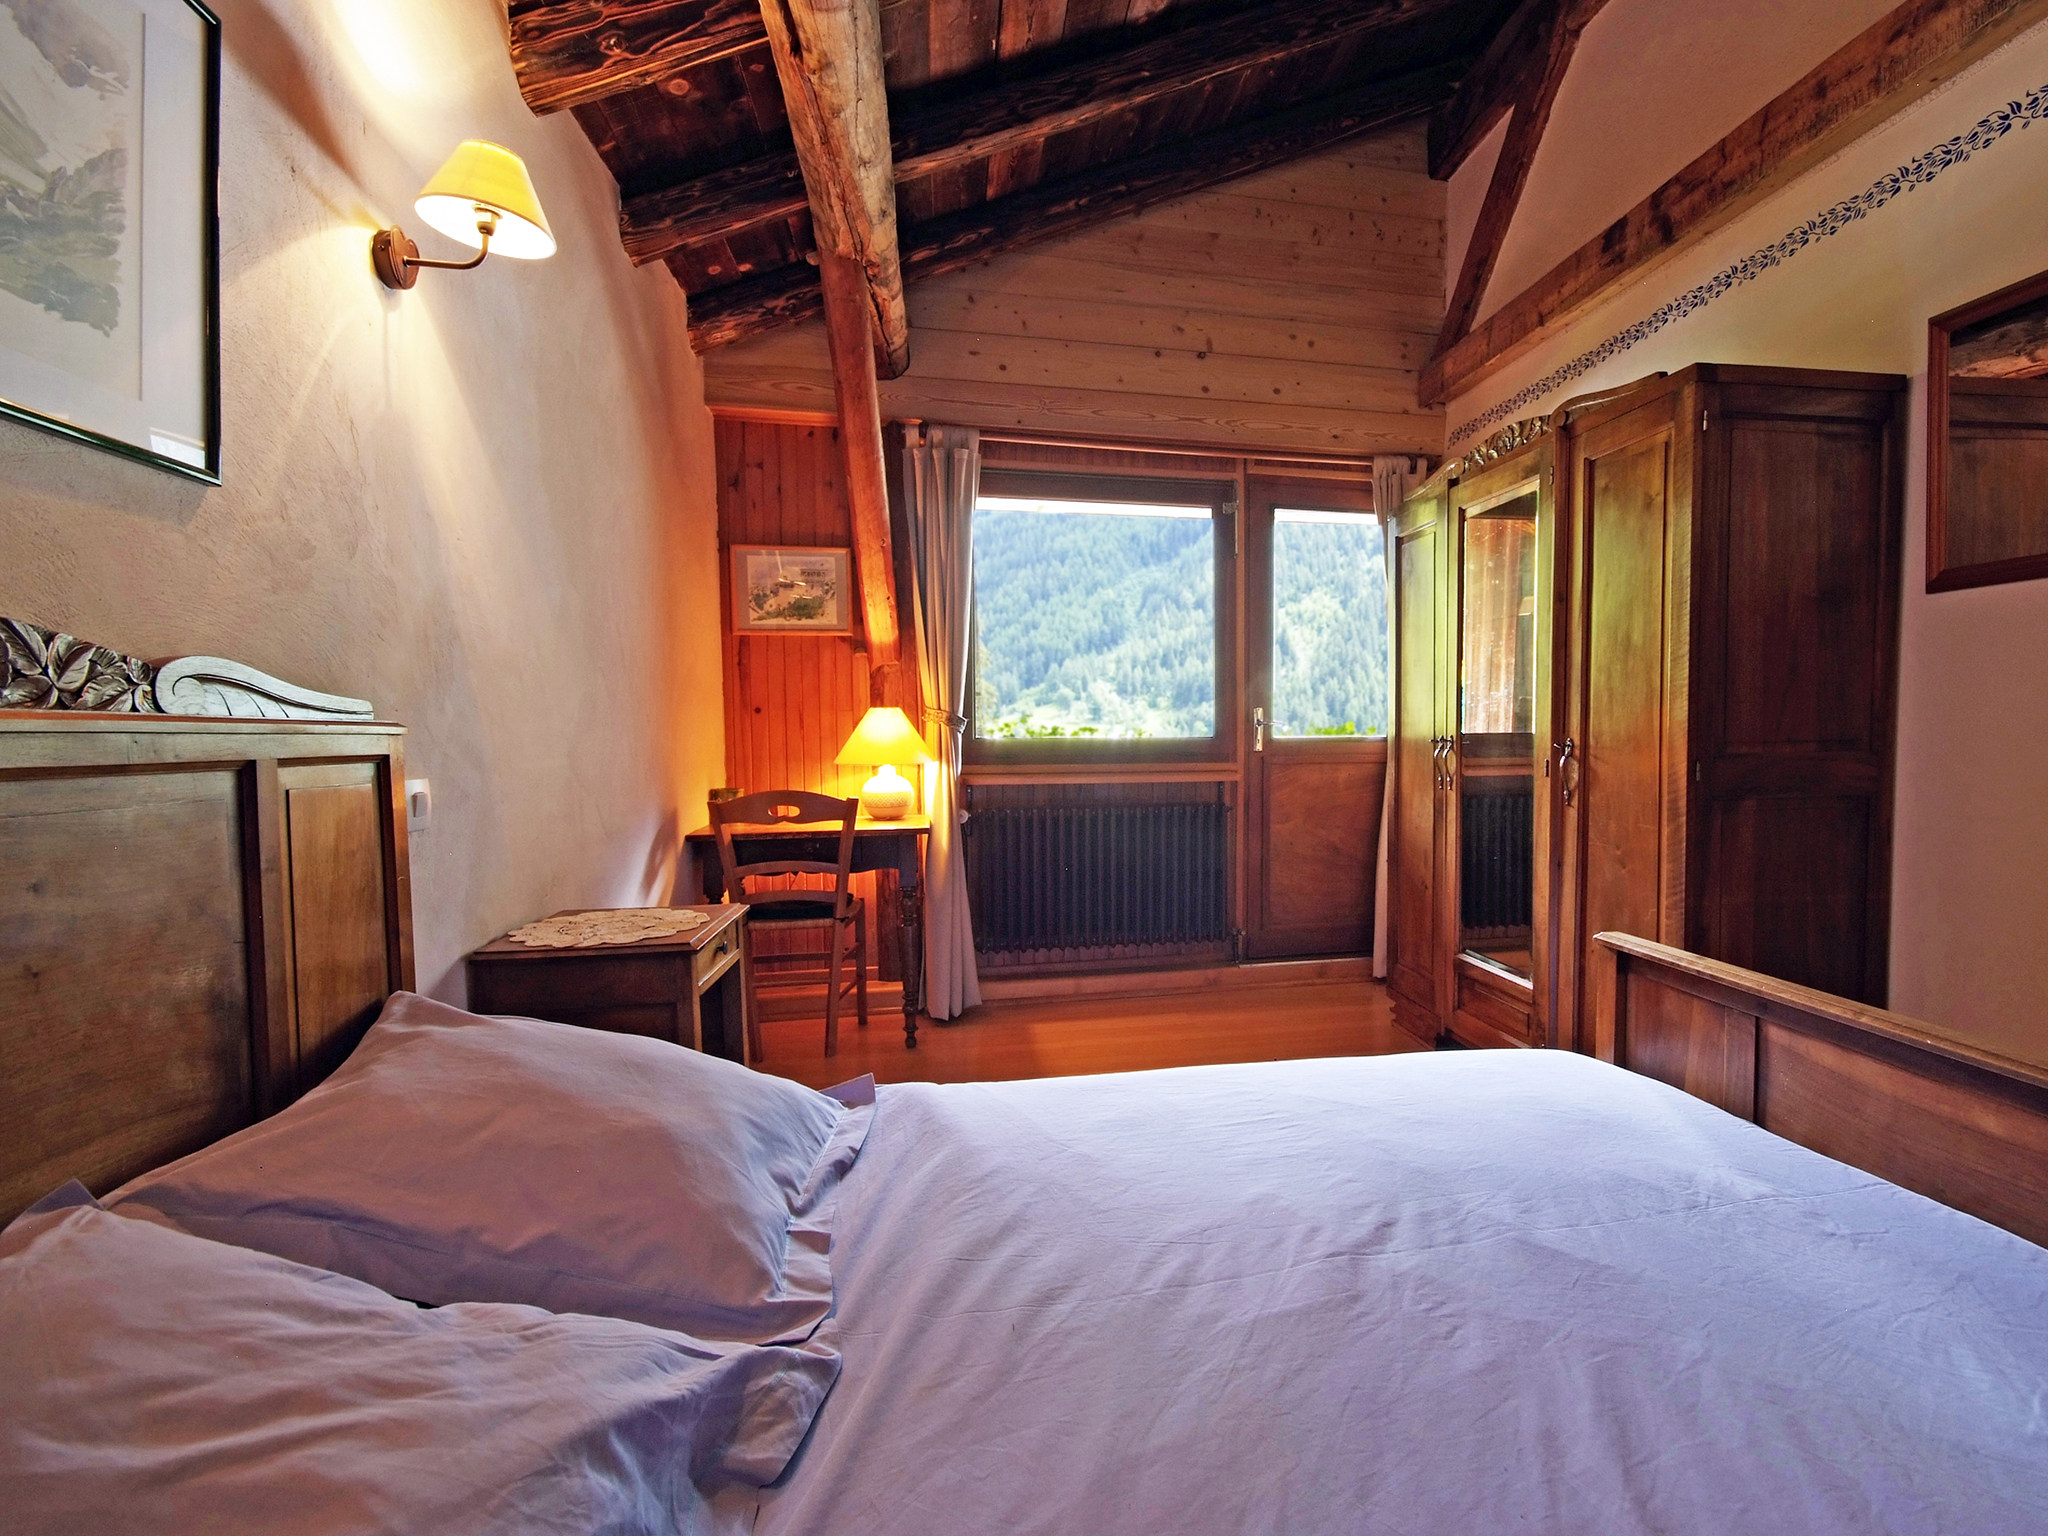 Chalet de Claude - bedroom